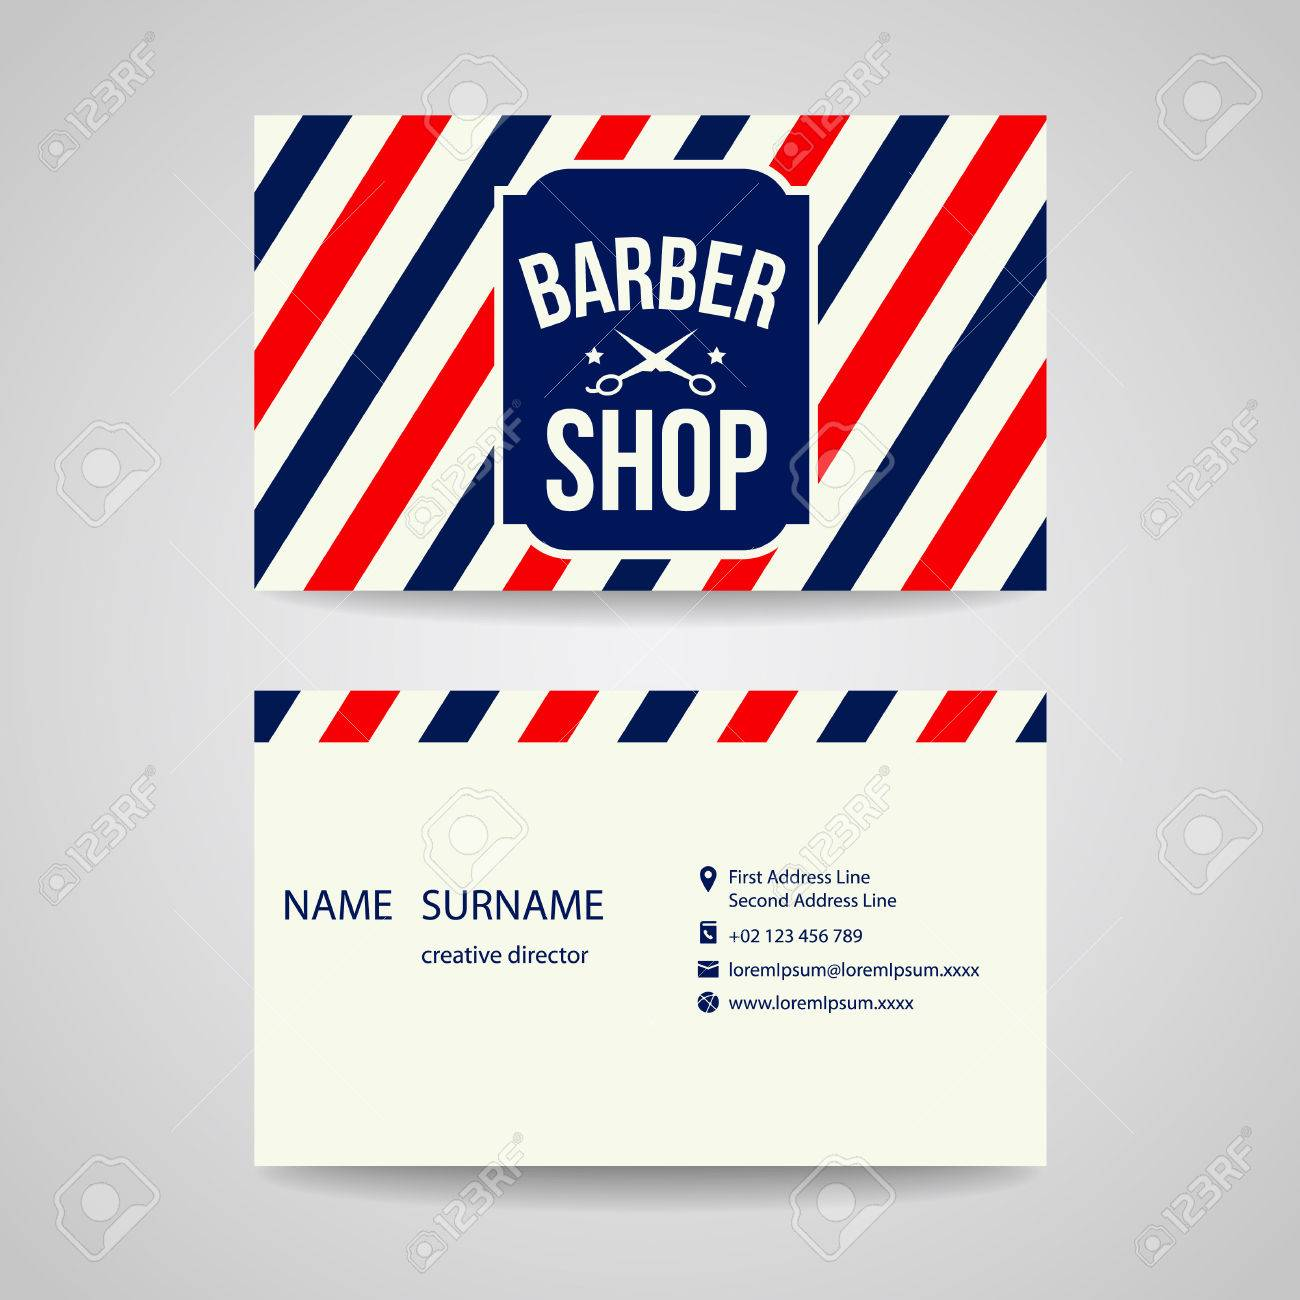 Business card template design for barber shop royalty free cliparts business card template design for barber shop stock vector 39559057 flashek Choice Image